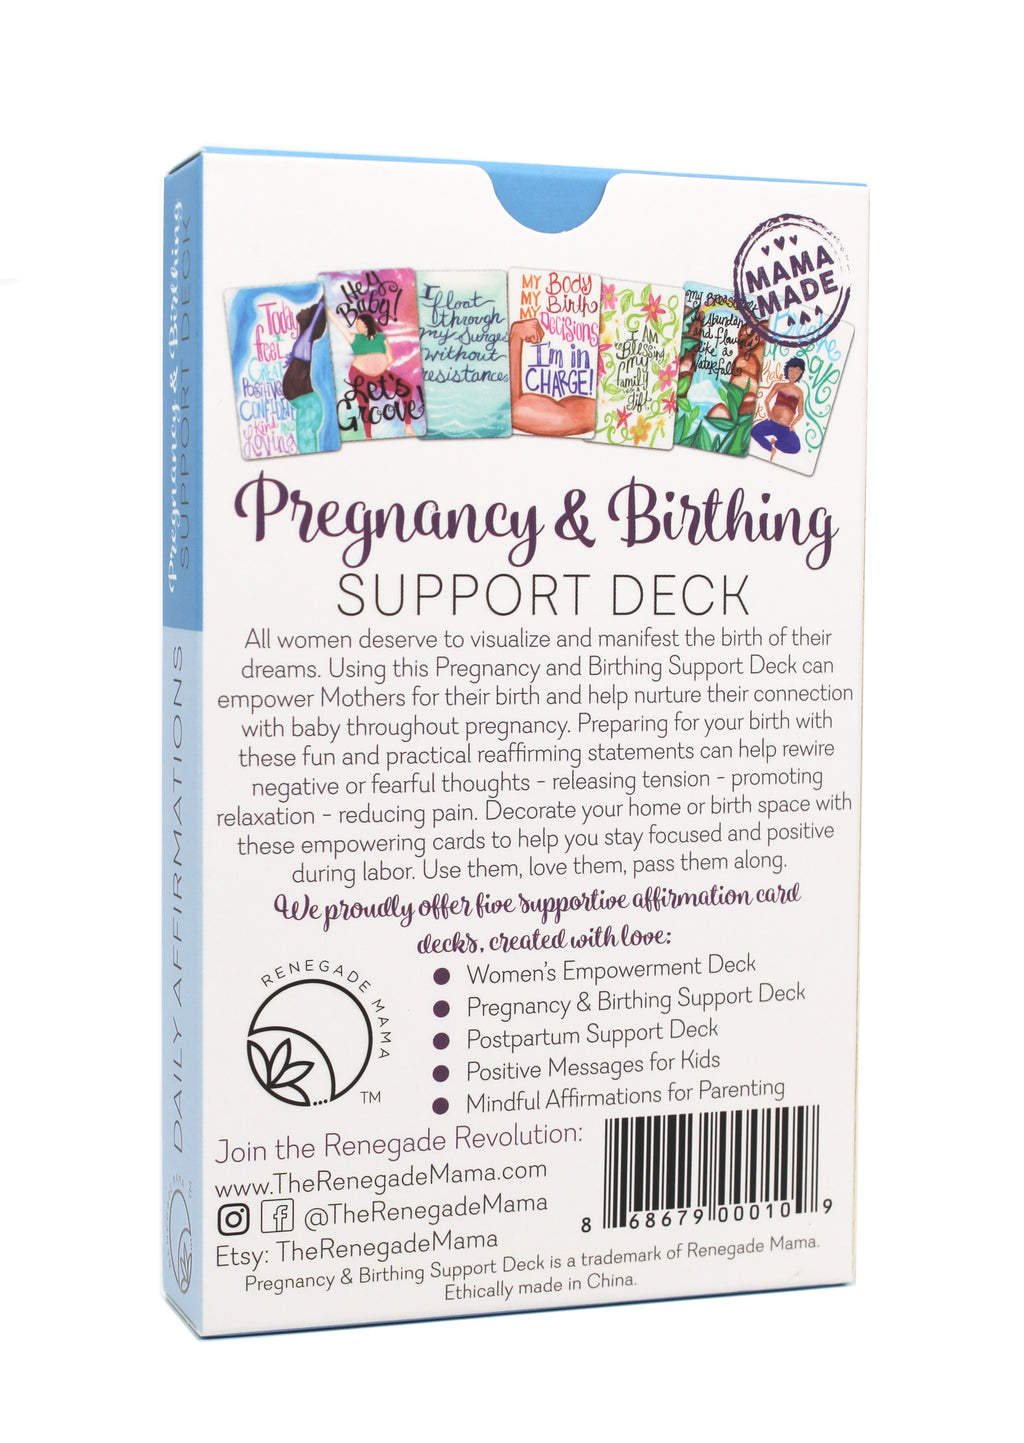 PREGNANCY & BIRTHING AFFIRMATION CARDS